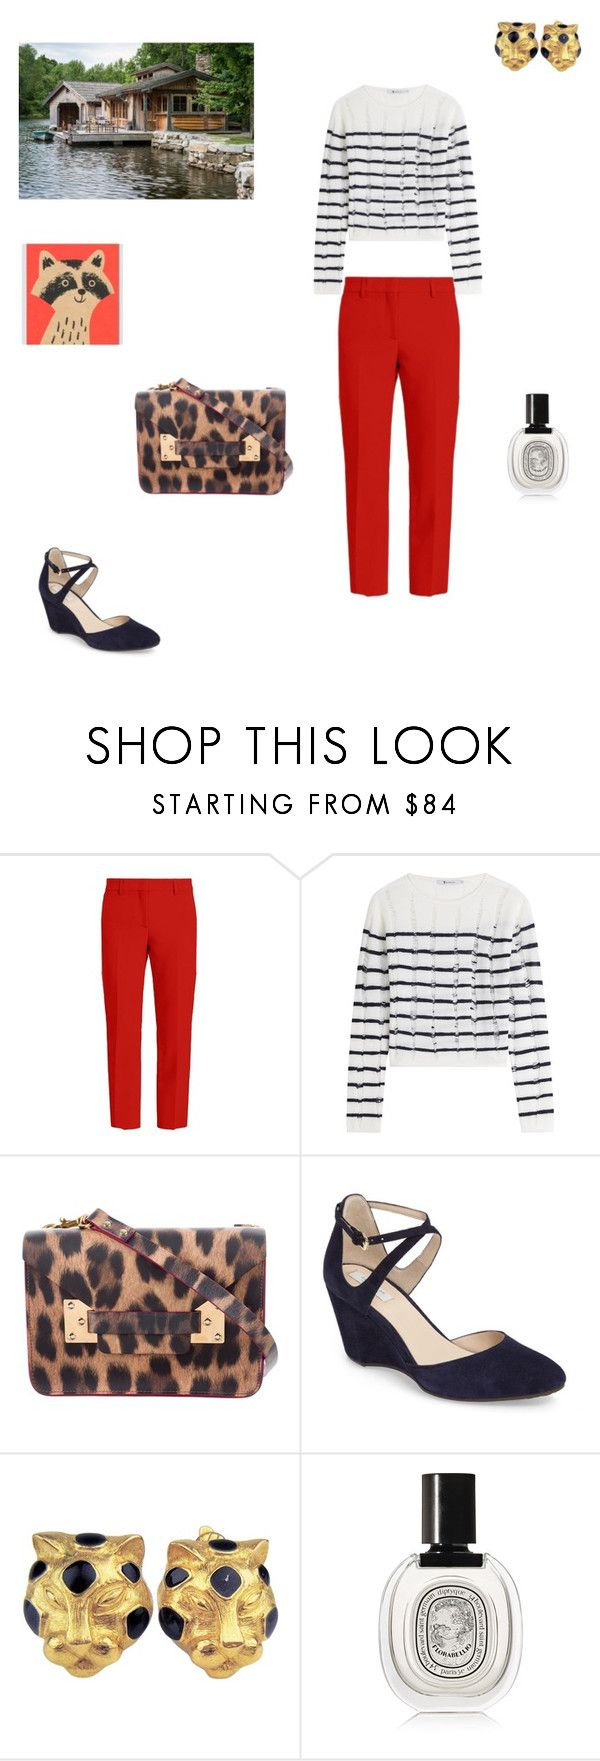 """""""Return to the city after a rest in a summer cottage"""" by lorablack ❤ liked on Polyvore featuring MSGM, T By Alexander Wang, Sophie Hulme, Cole Haan, Trifari, Diptyque and Lisa Jones Studio"""